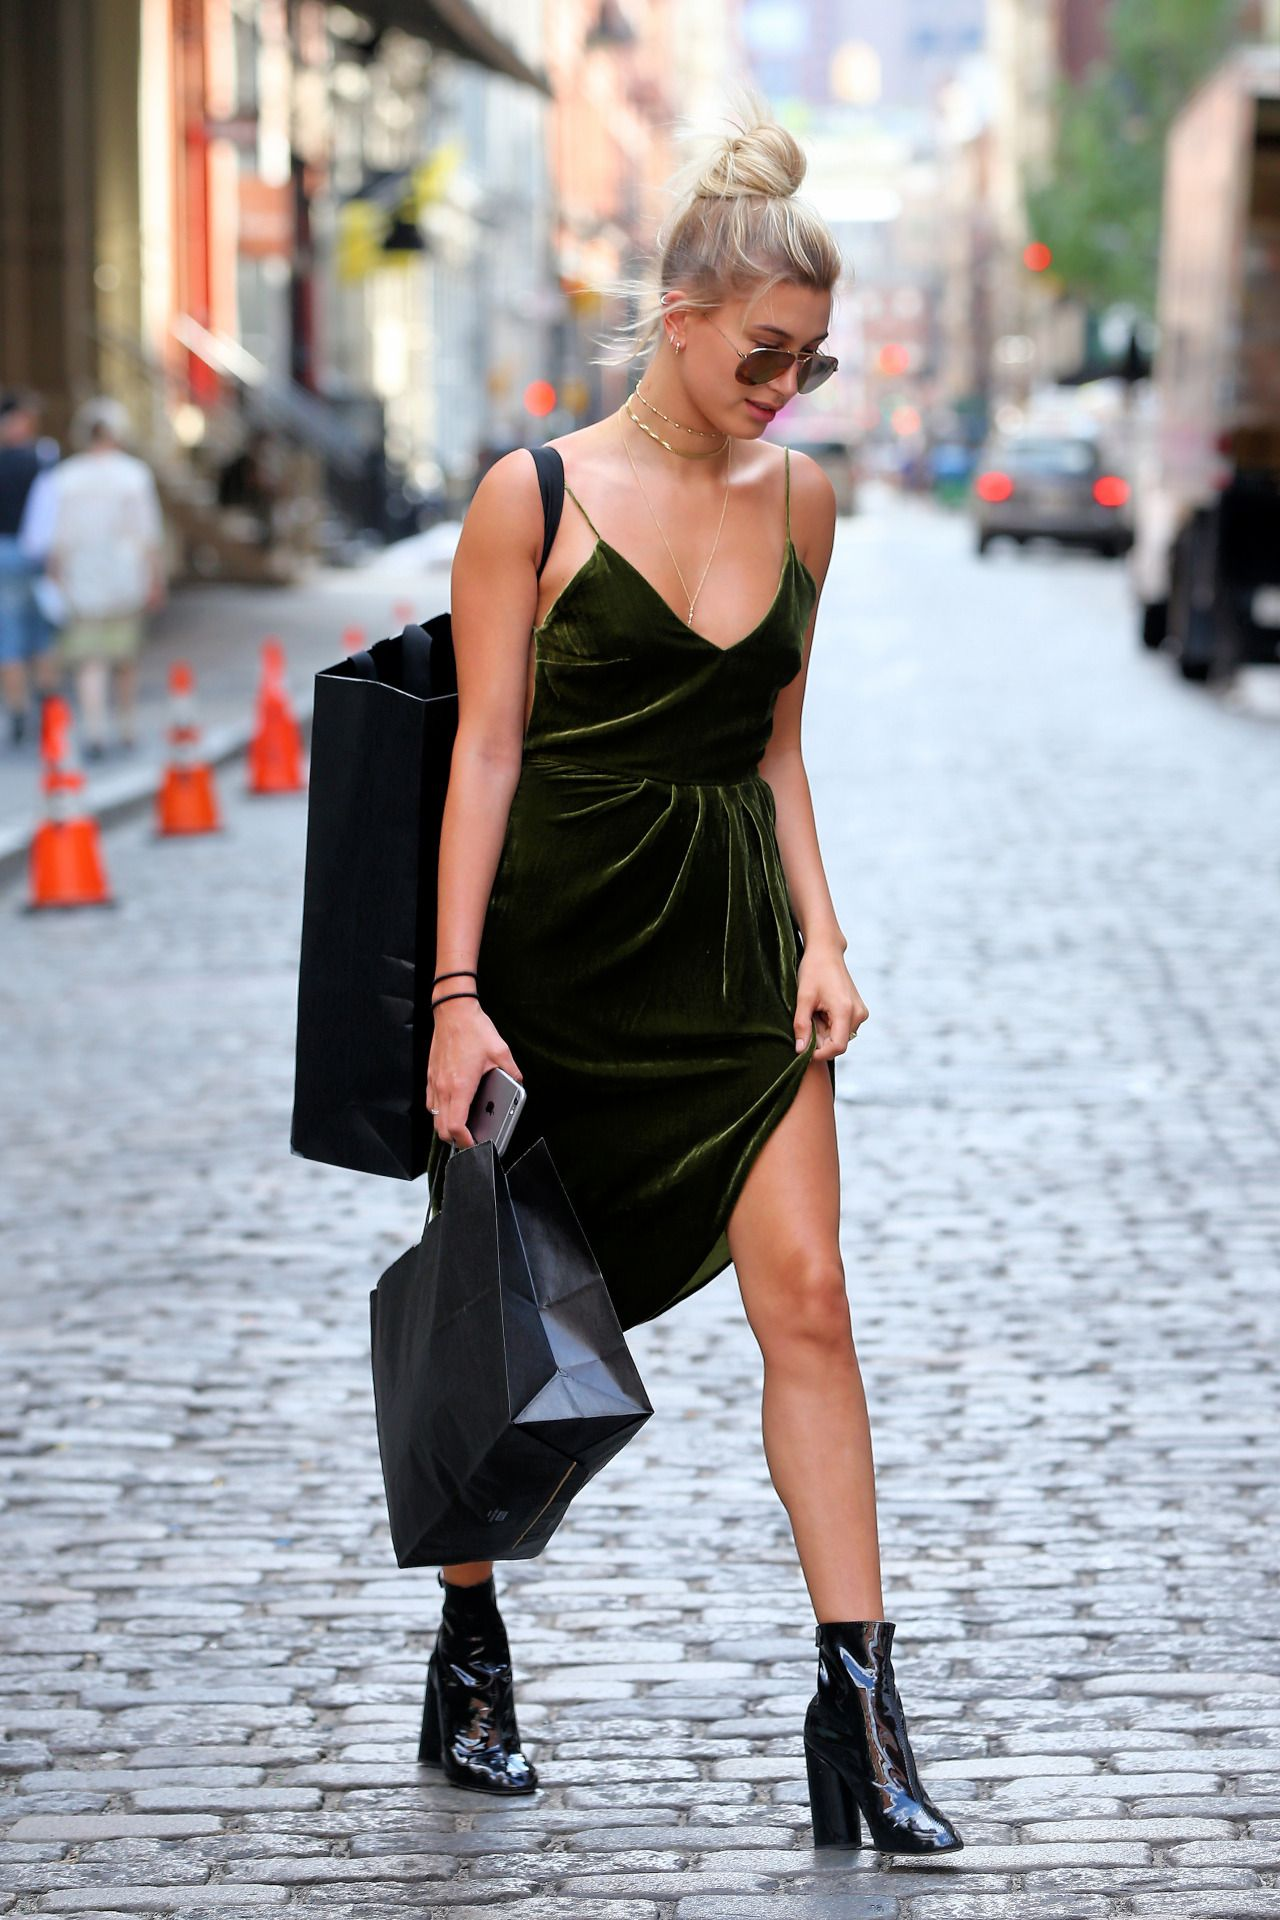 d44f6cb62de61 Hailey balwin in a strappy velvet dress and black booties is so perfect for  Summer